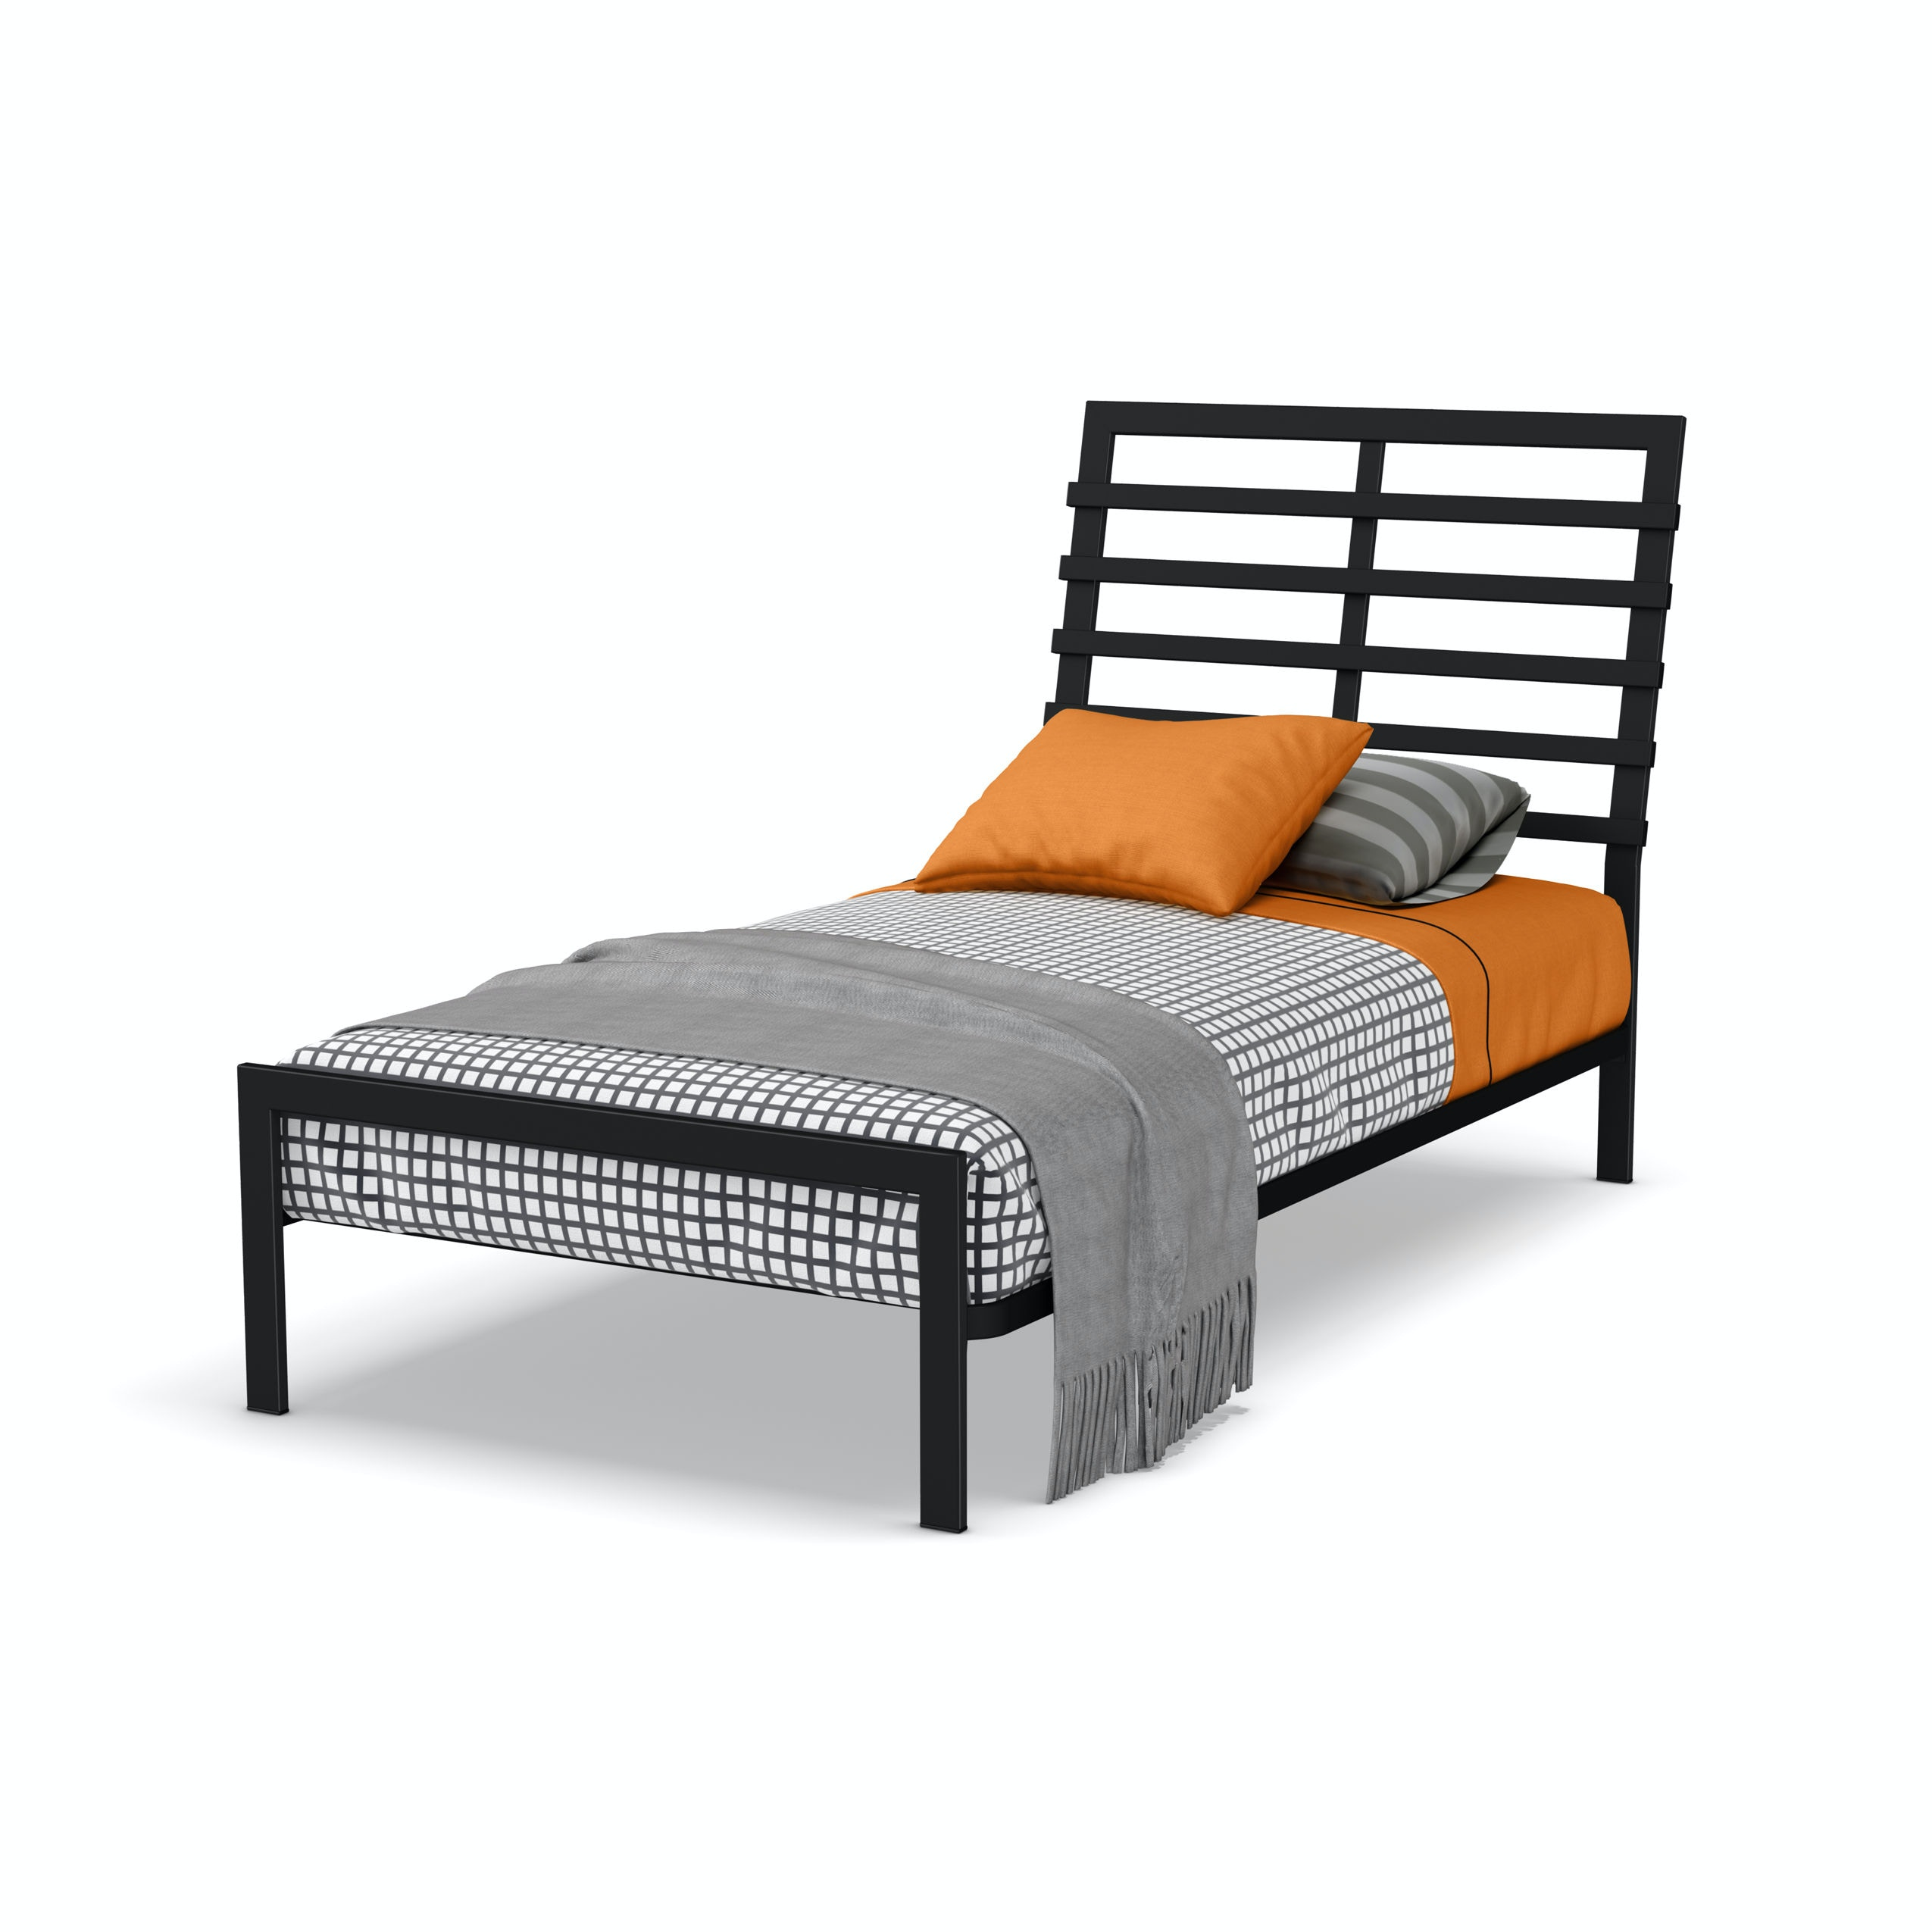 Amisco Youth Bronson Twin Size Bed Headboard And Footboard 12414 39tp Martin Furniture Mattress